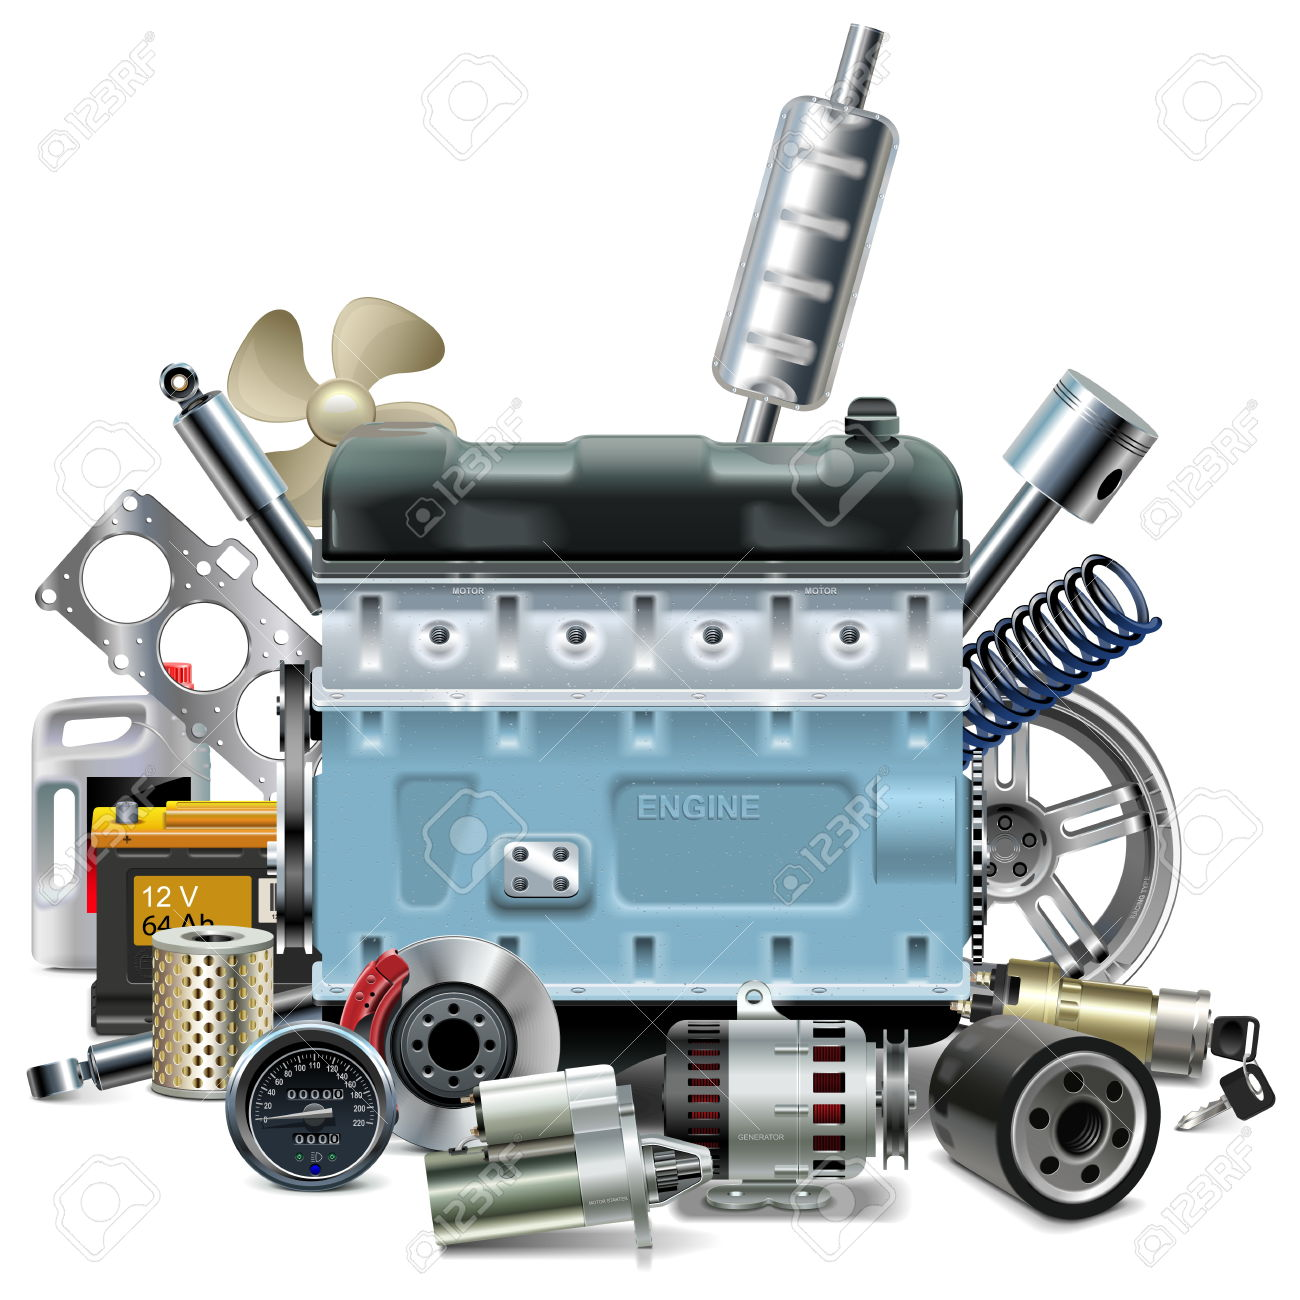 13,264 Car Parts Stock Illustrations, Cliparts And Royalty Free.